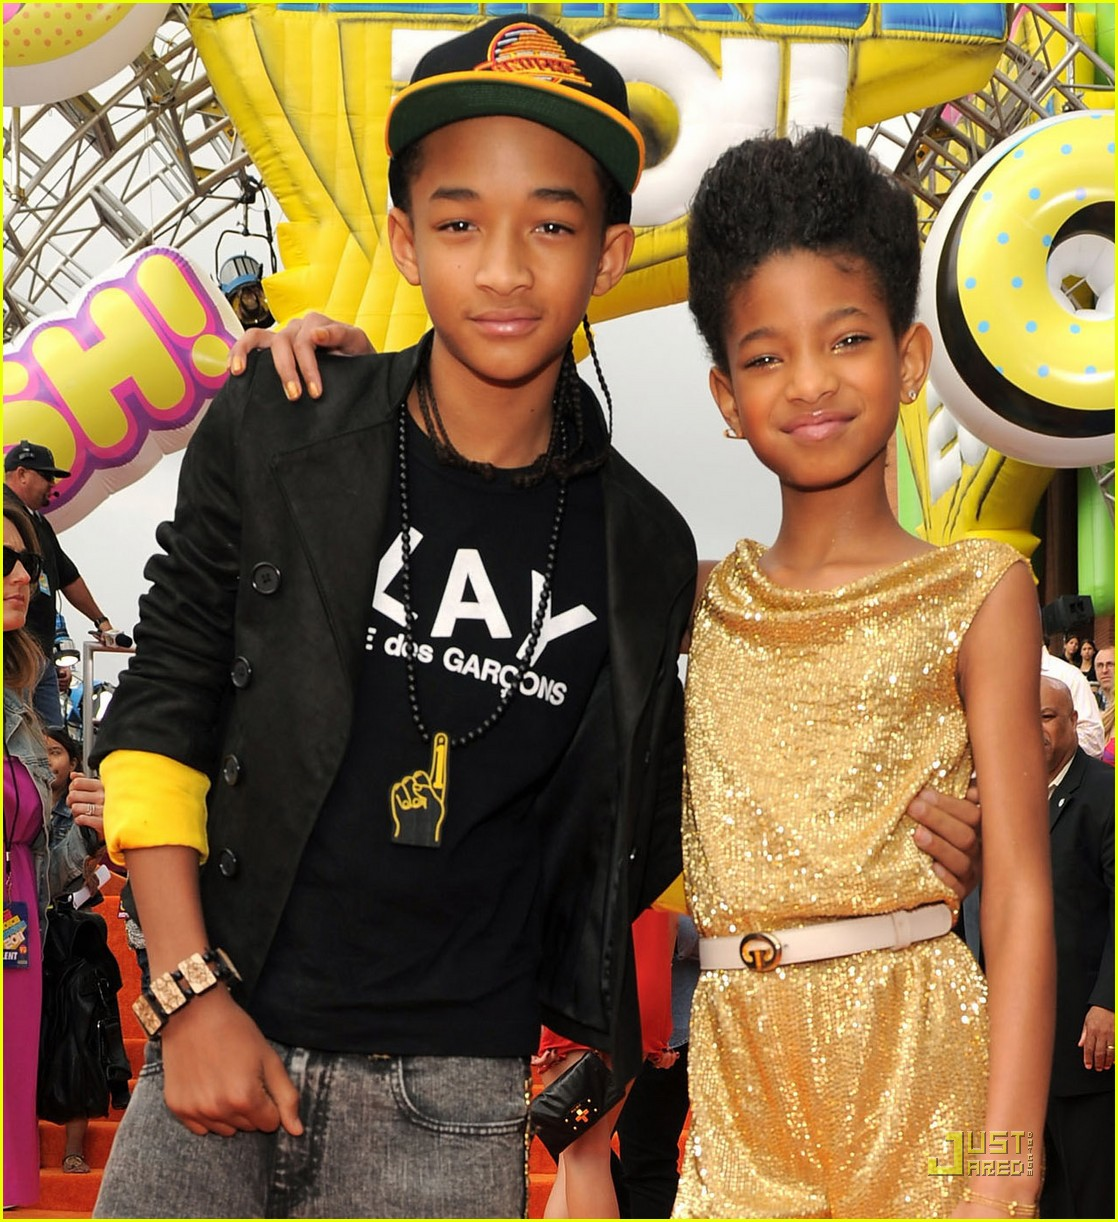 http://1.bp.blogspot.com/-OCYsroAaRFE/TZjx09y70QI/AAAAAAAAIGI/q7v6ugp0x0g/s1600/willow-jaden-smith-kids-choice-awards-2011-04.jpg